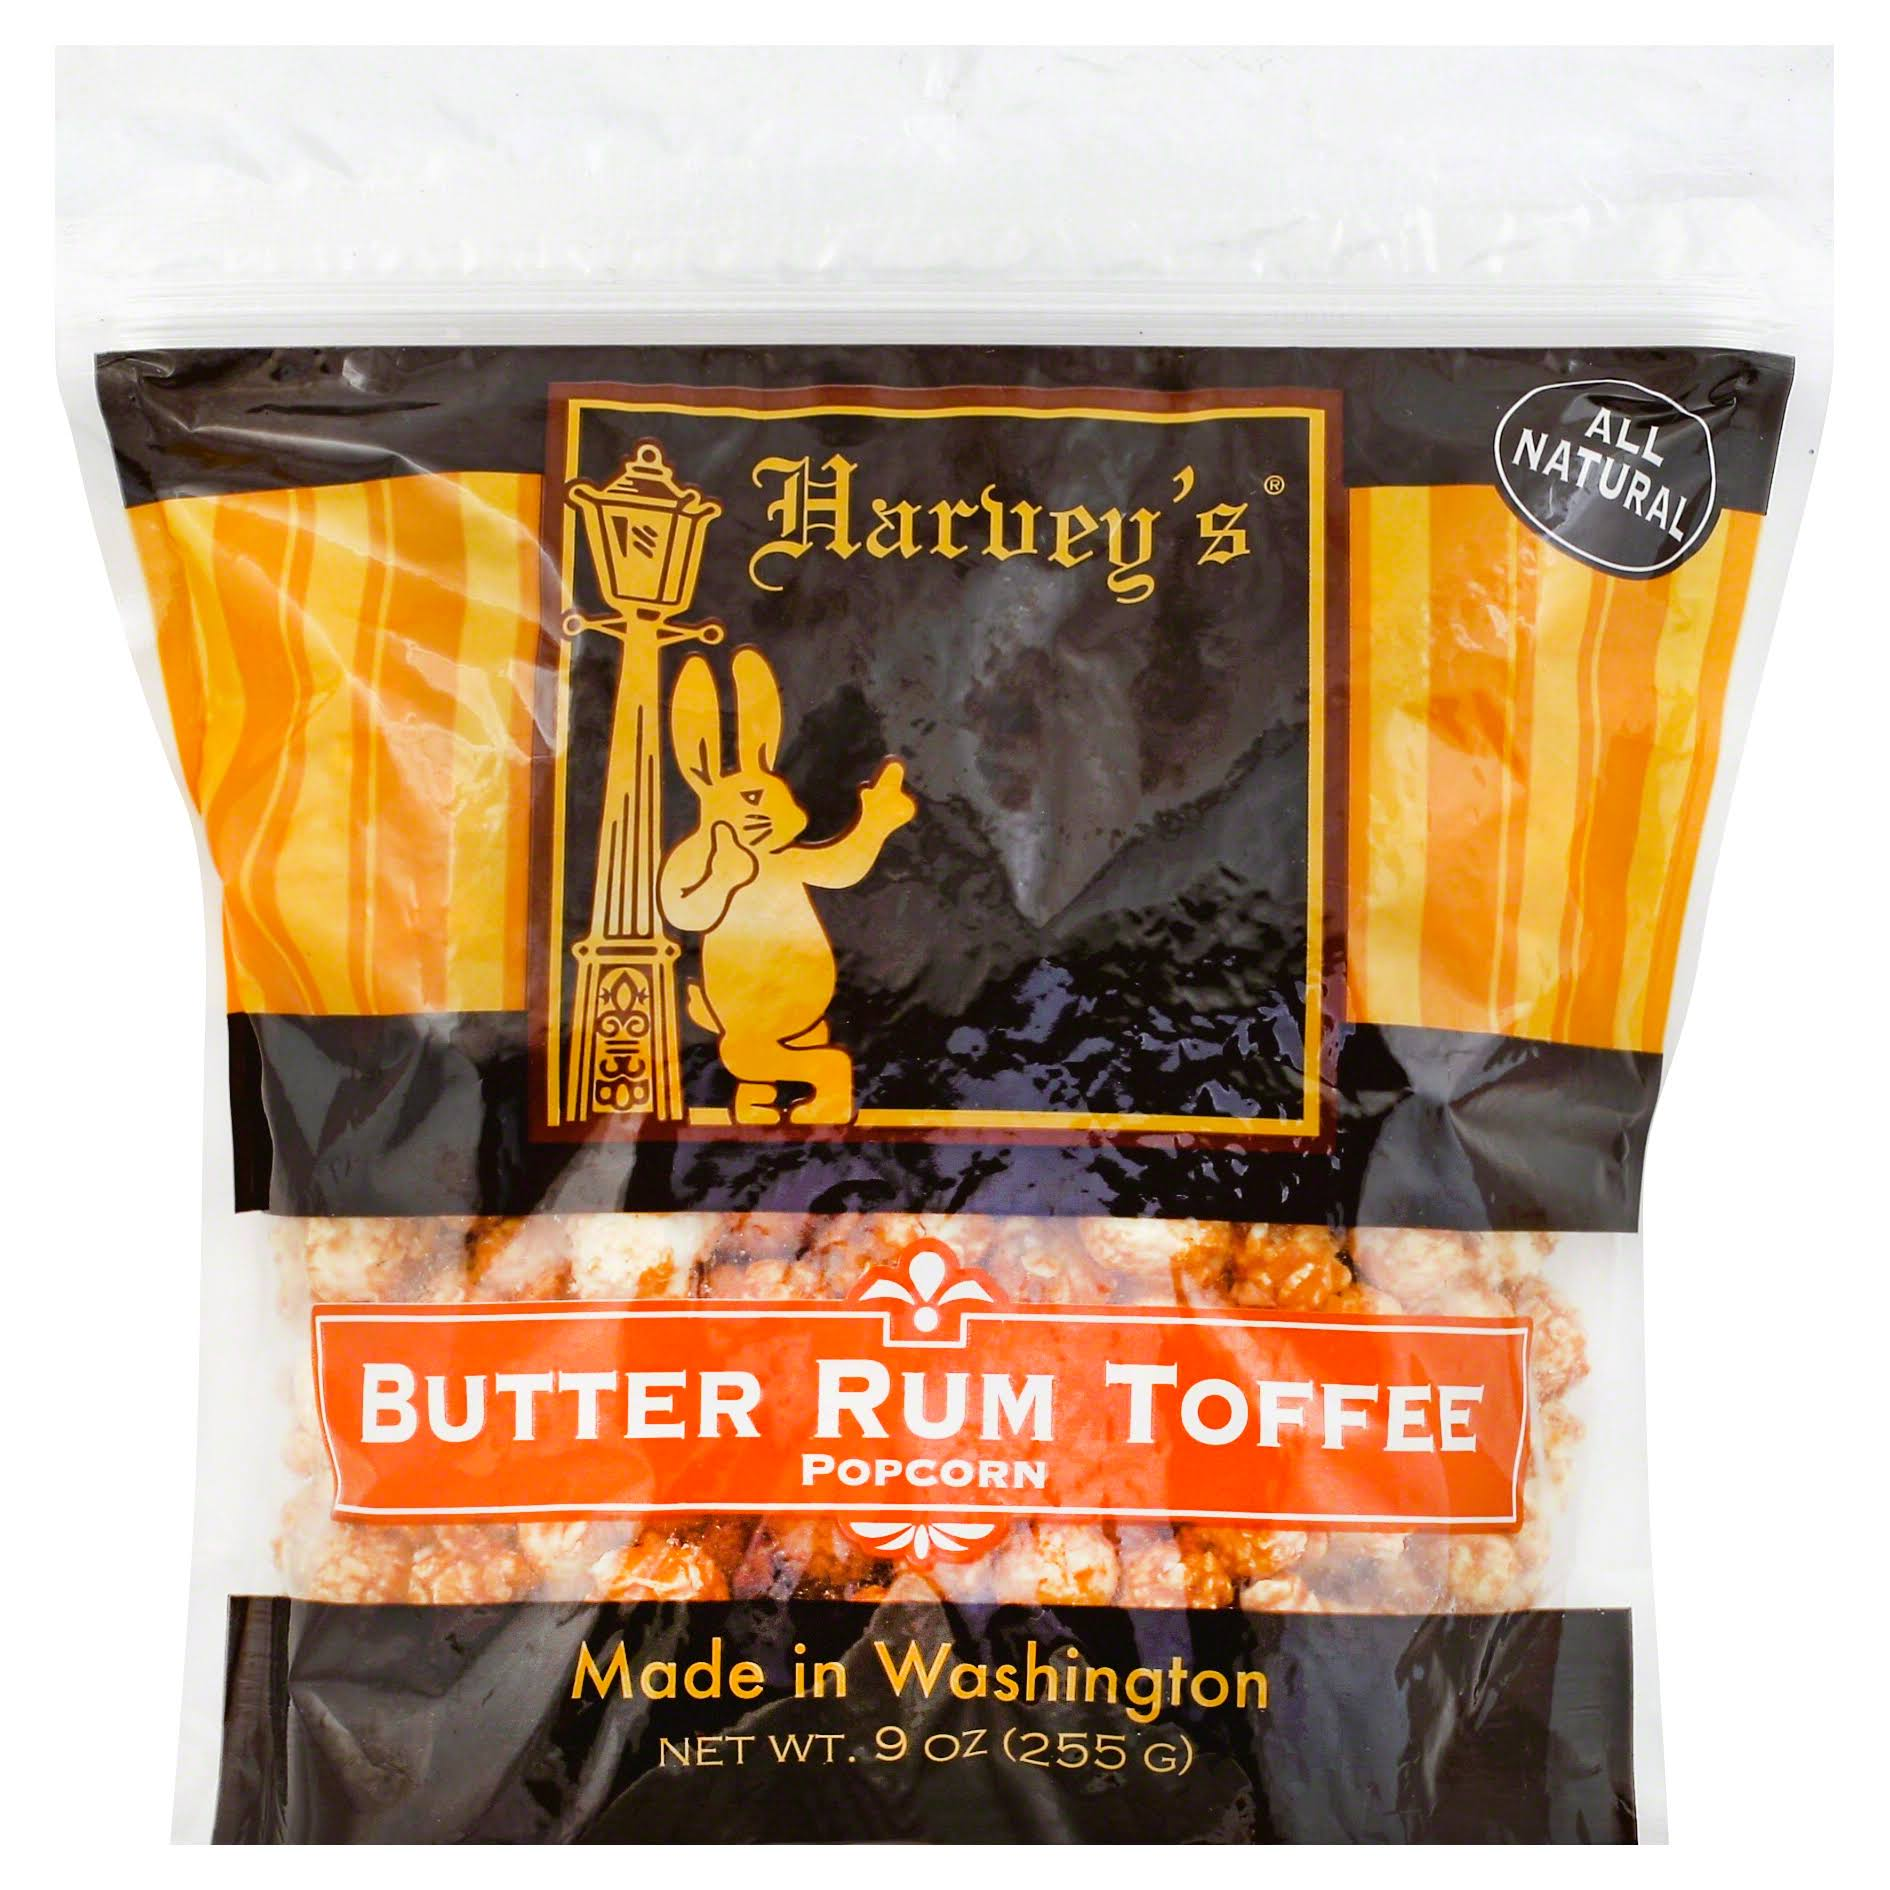 Harveys Popcorn, Butter Rum Toffee - 9 oz